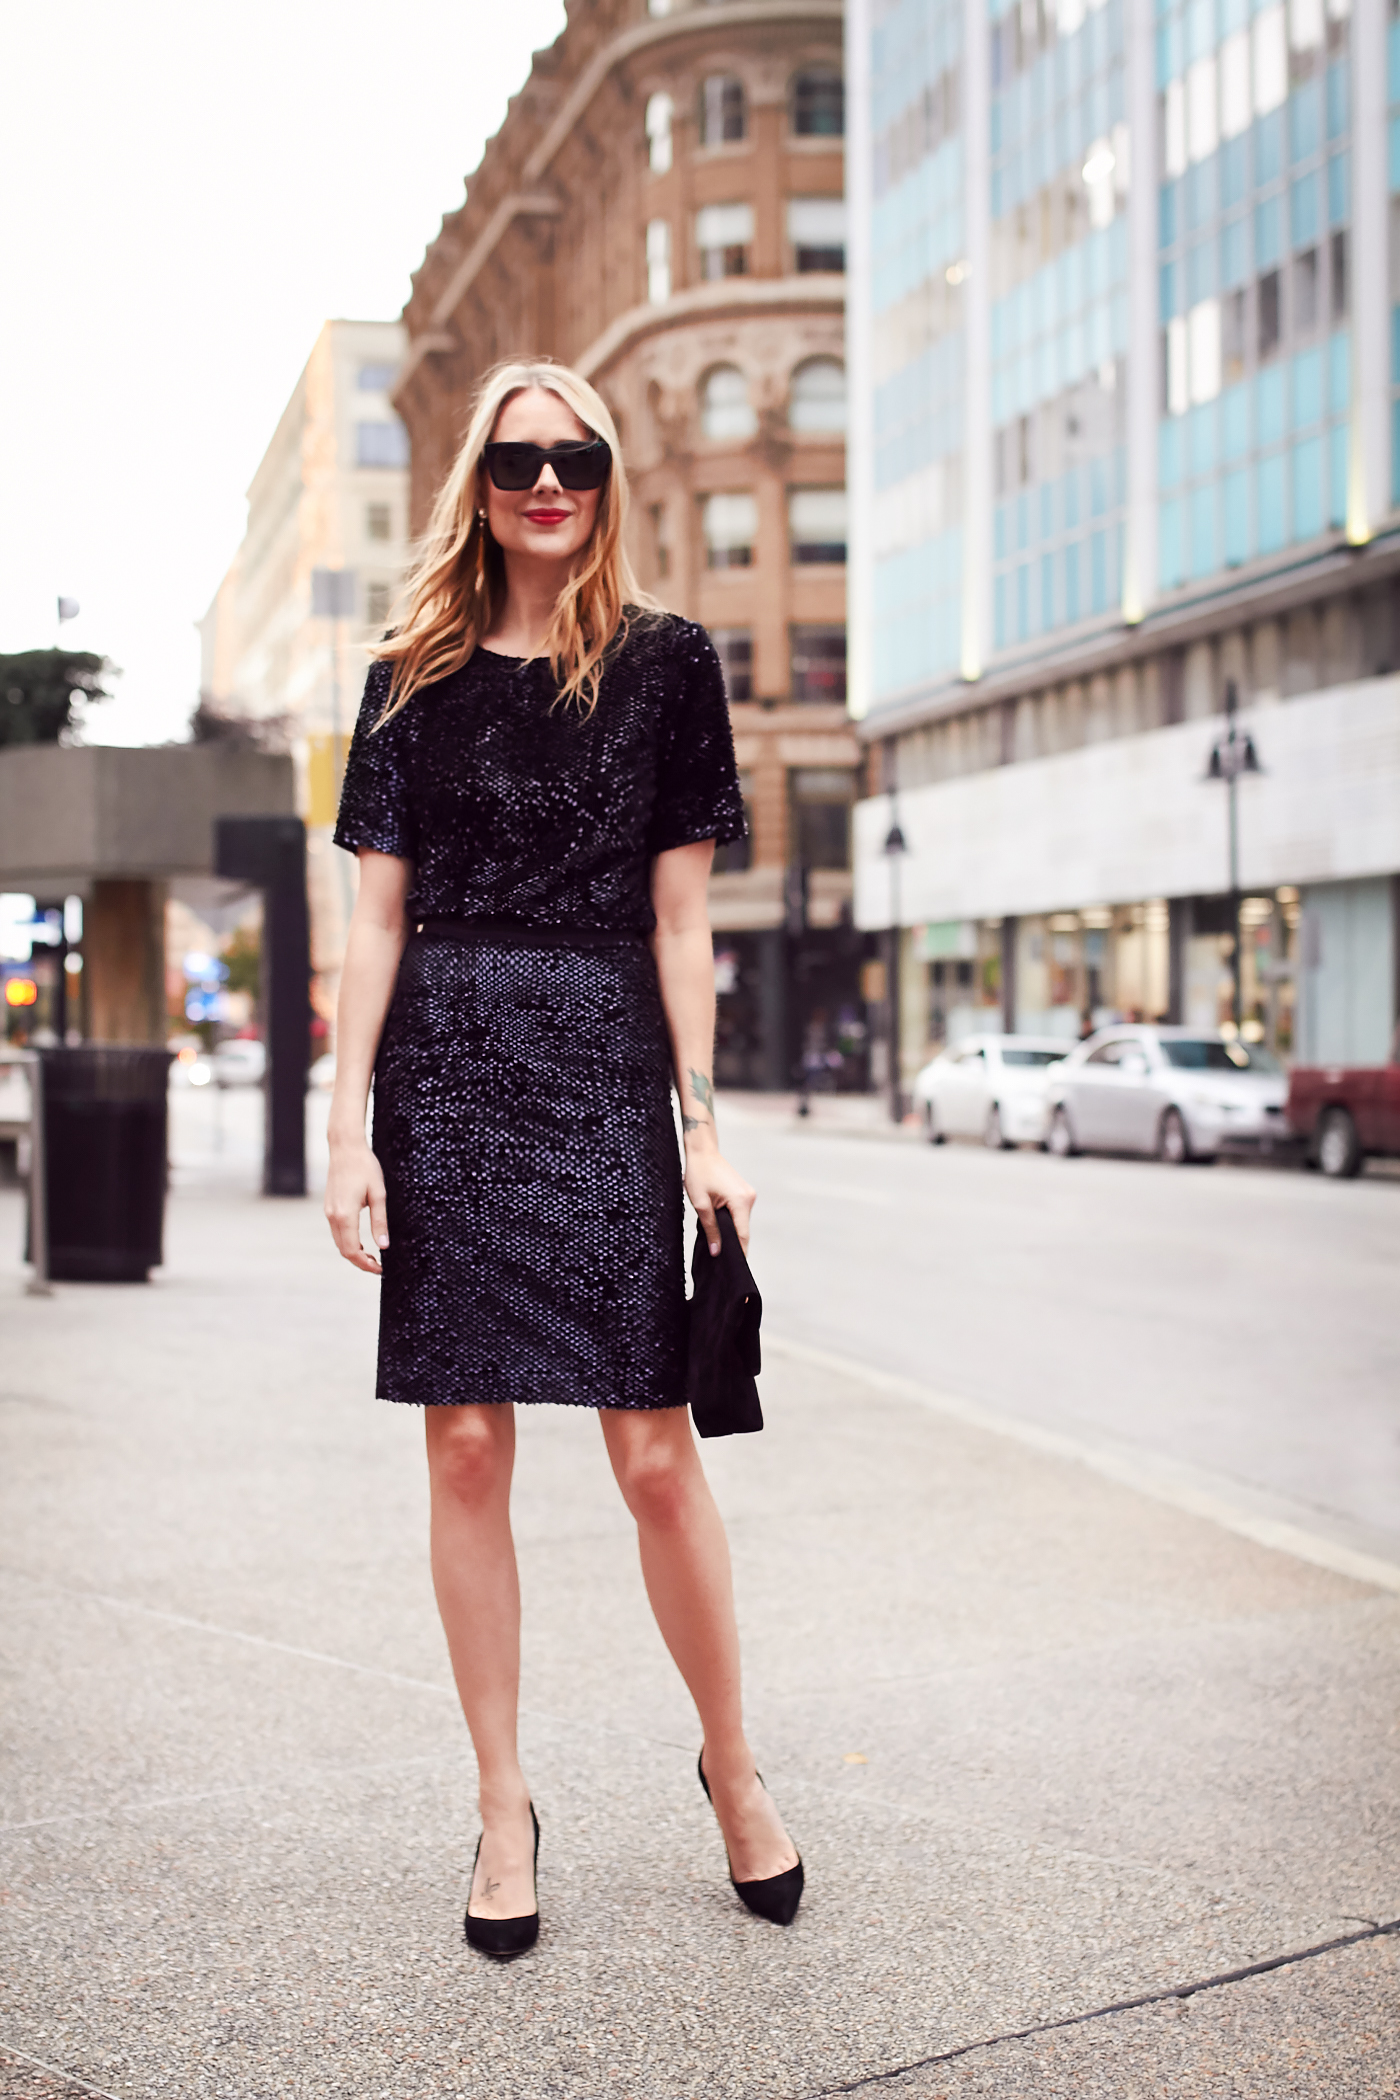 516ae3f167 Holiday Outfit, Party Dressing, Sequin Top, Sequin Pencil Skirt, Black  Pumps,